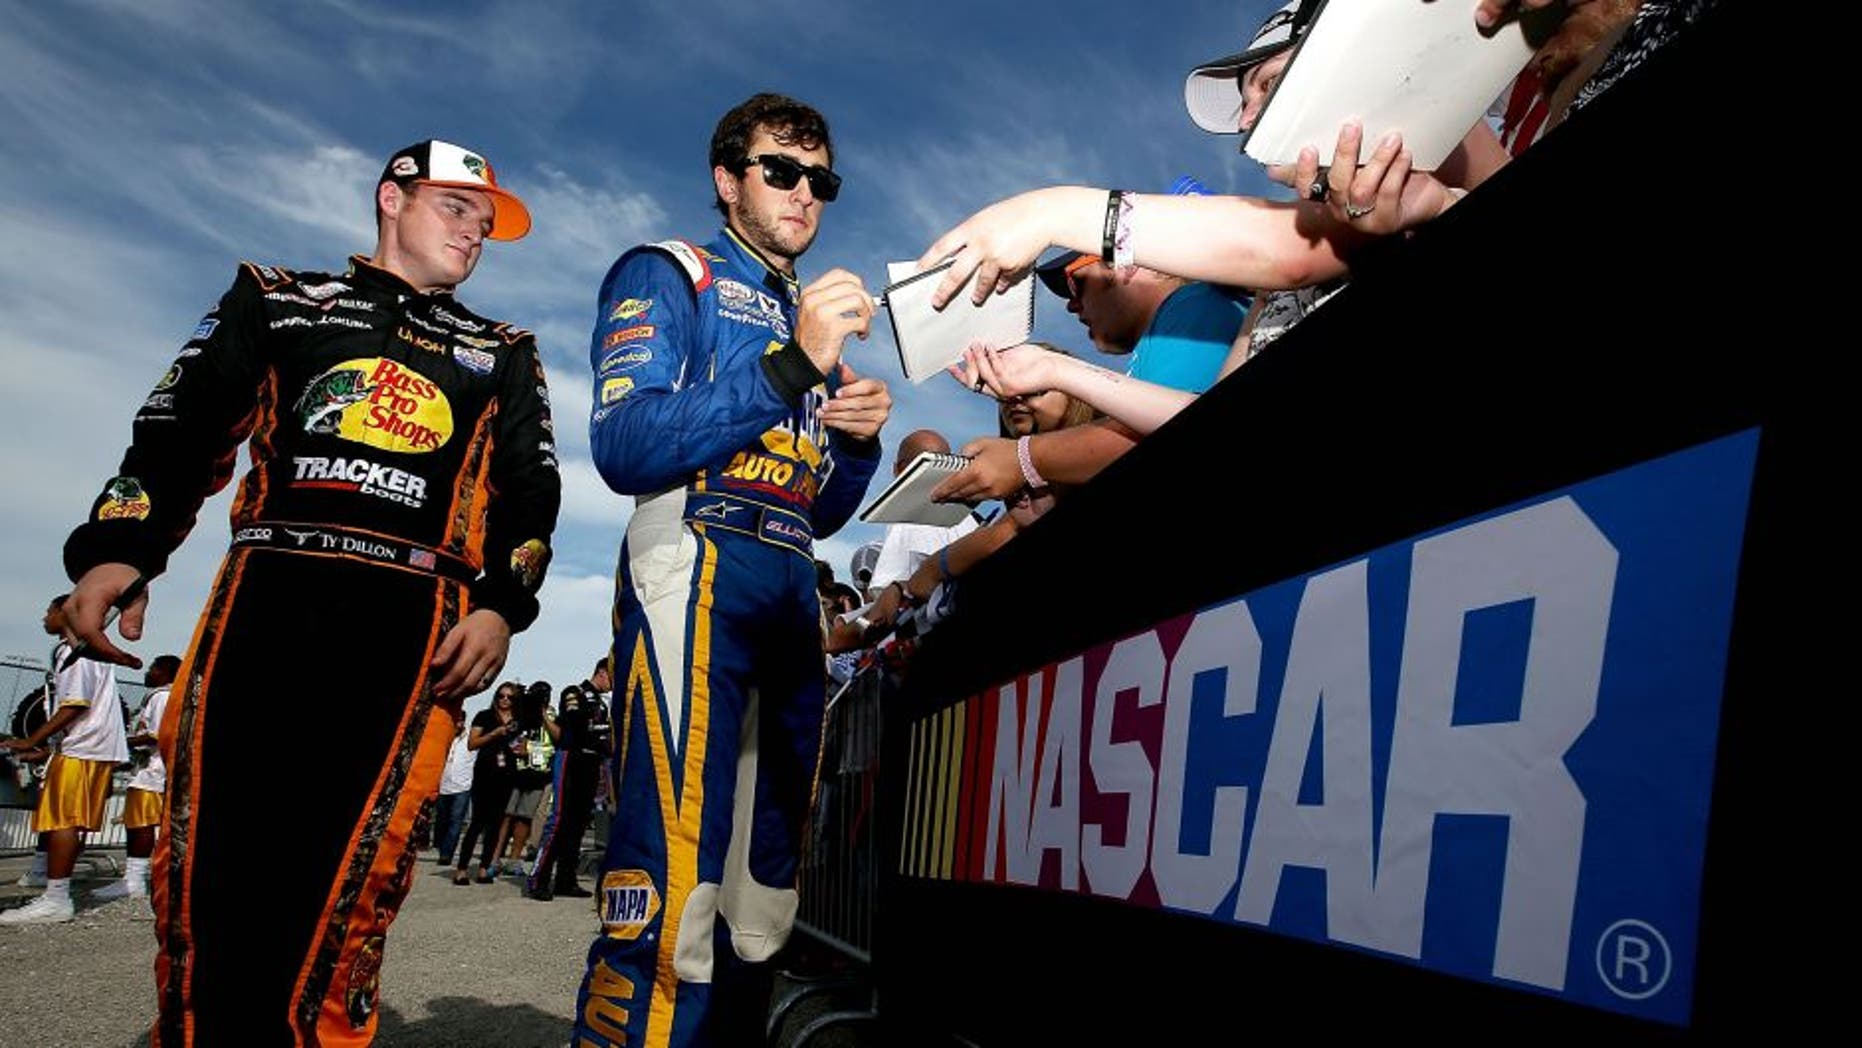 NEWTON, IA - AUGUST 01: Chase Elliott, driver of the #9 NAPA Auto Parts Chevrolet, and Ty Dillon, driver of the #3 Bass Pro Shops/Tracker Boats Chevrolet, sign autographs prior to the start of the NASCAR XFINITY Series U.S. Cellular 250 at Iowa Speedway on August 1, 2015 in Newton, Iowa. (Photo by Sean Gardner/NASCAR via Getty Images)